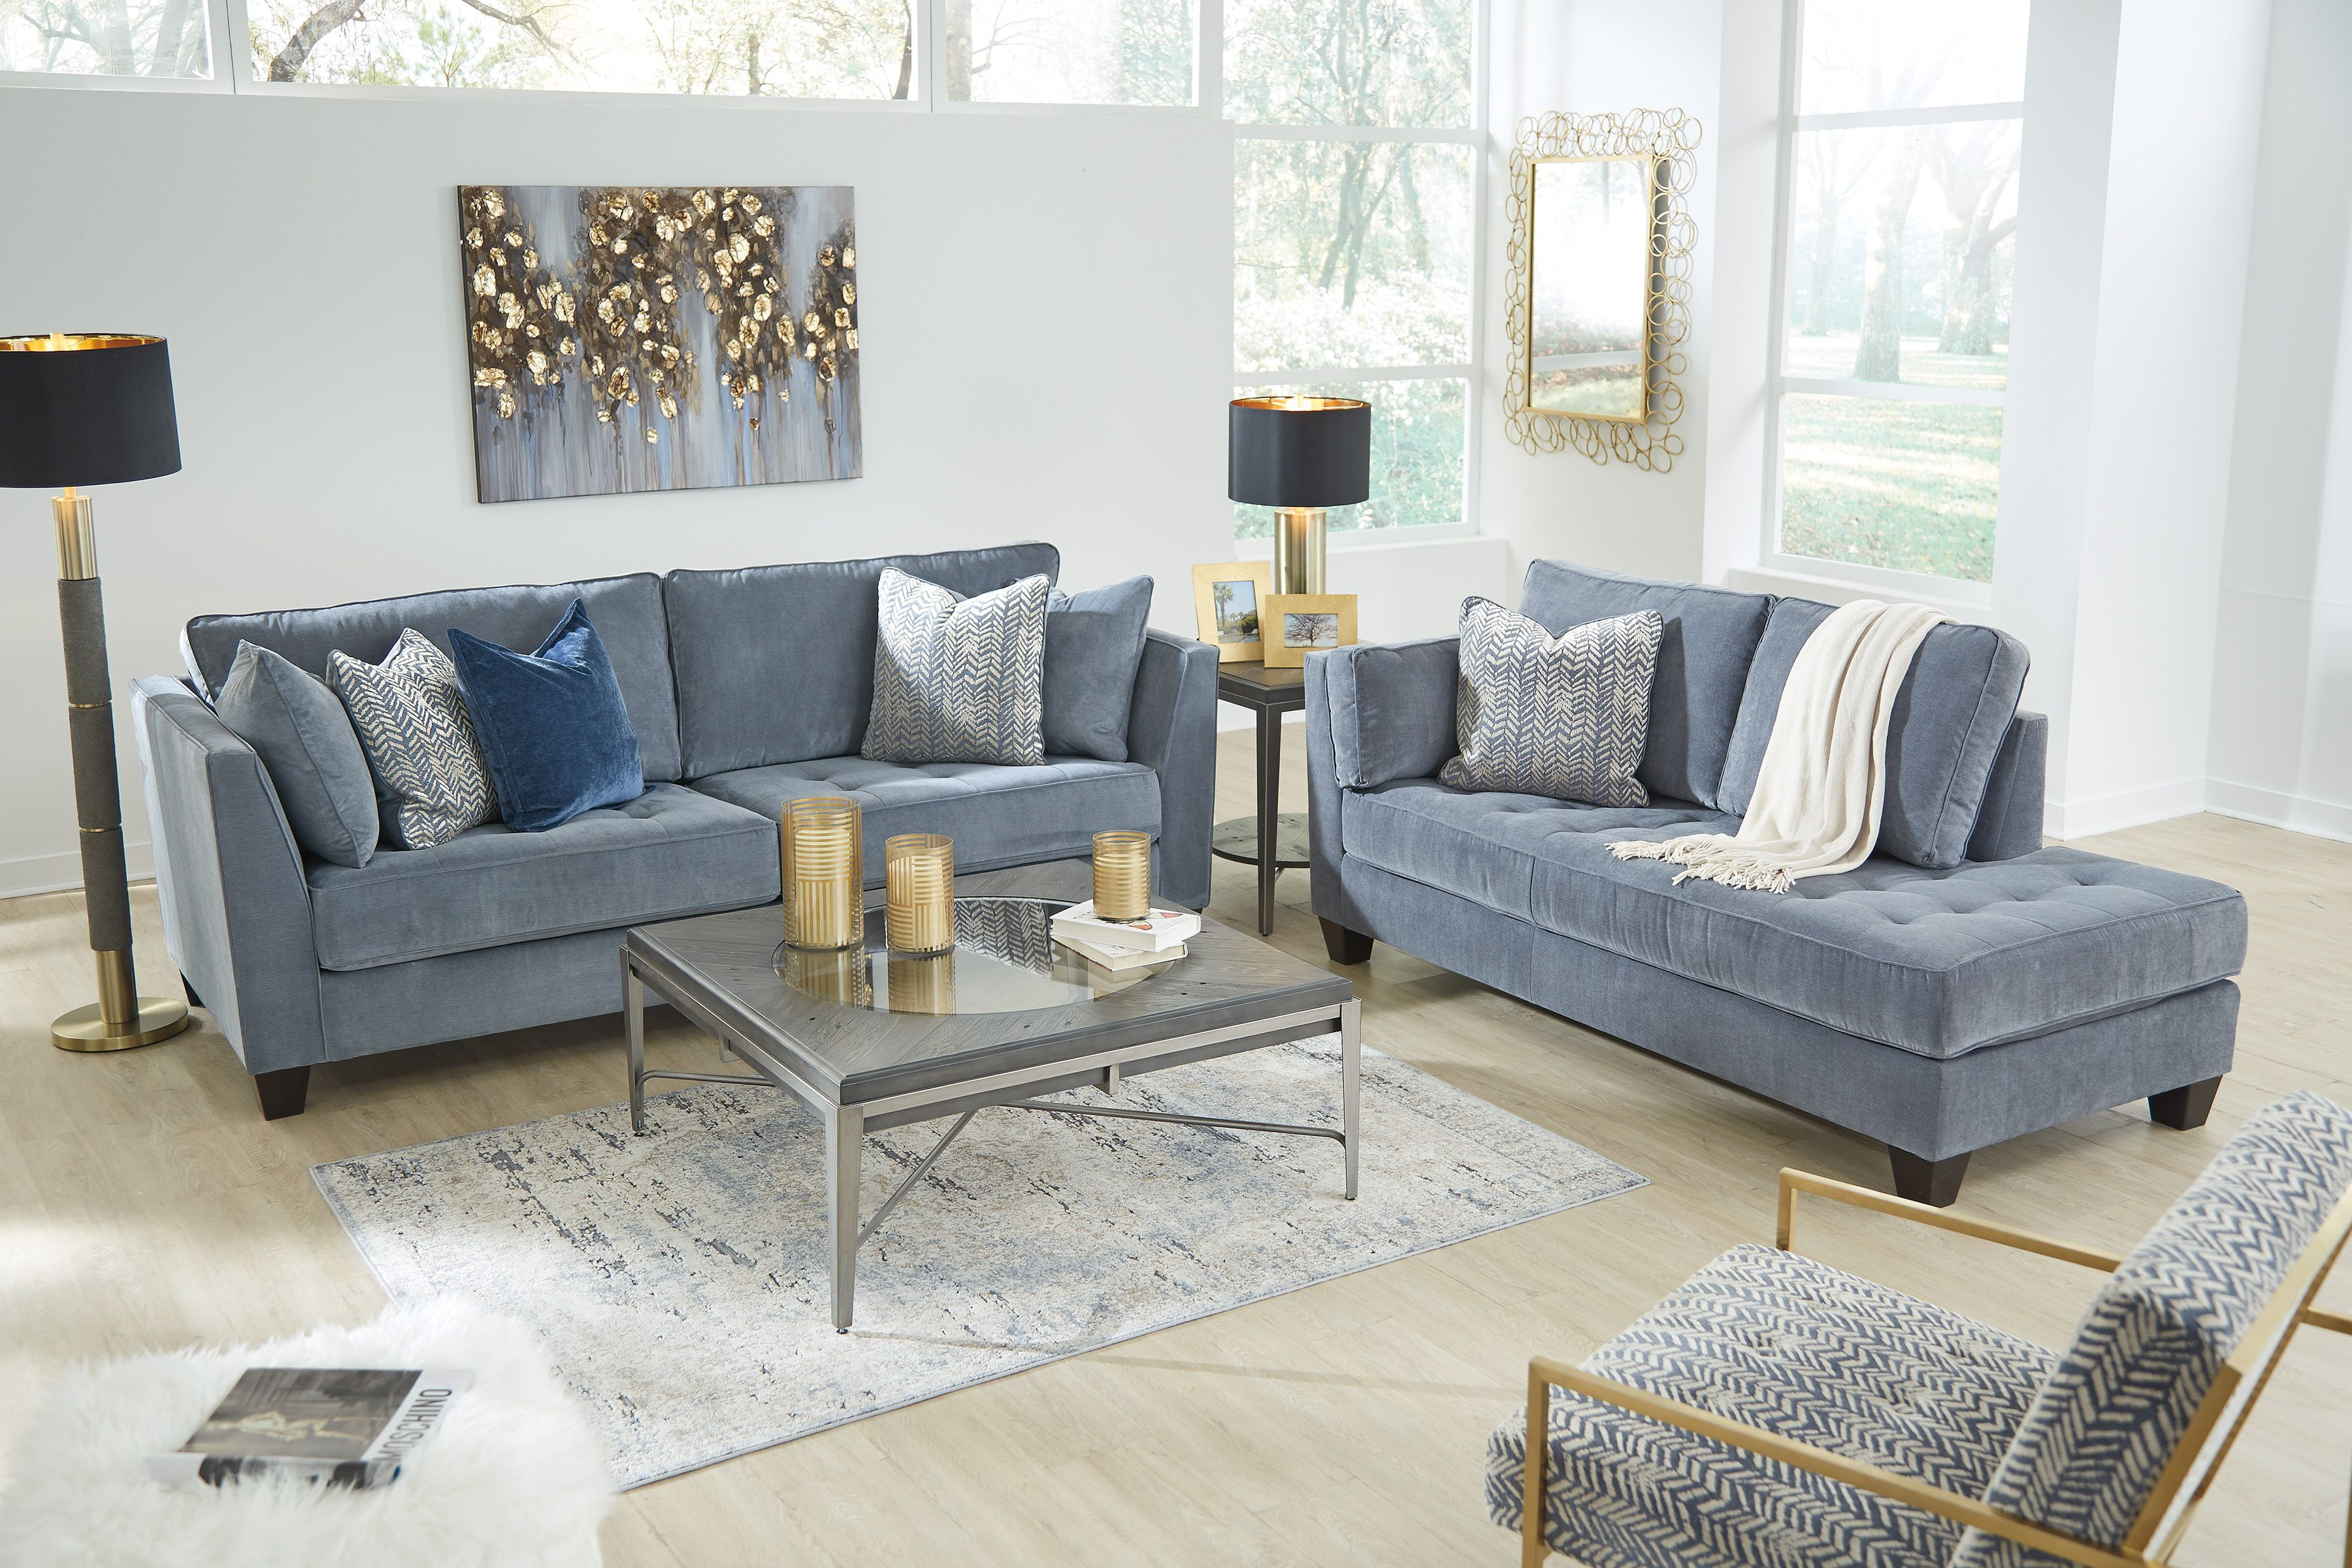 Sciolo Sofa Bring Home An Effortlessly Chic Sense Of Style With